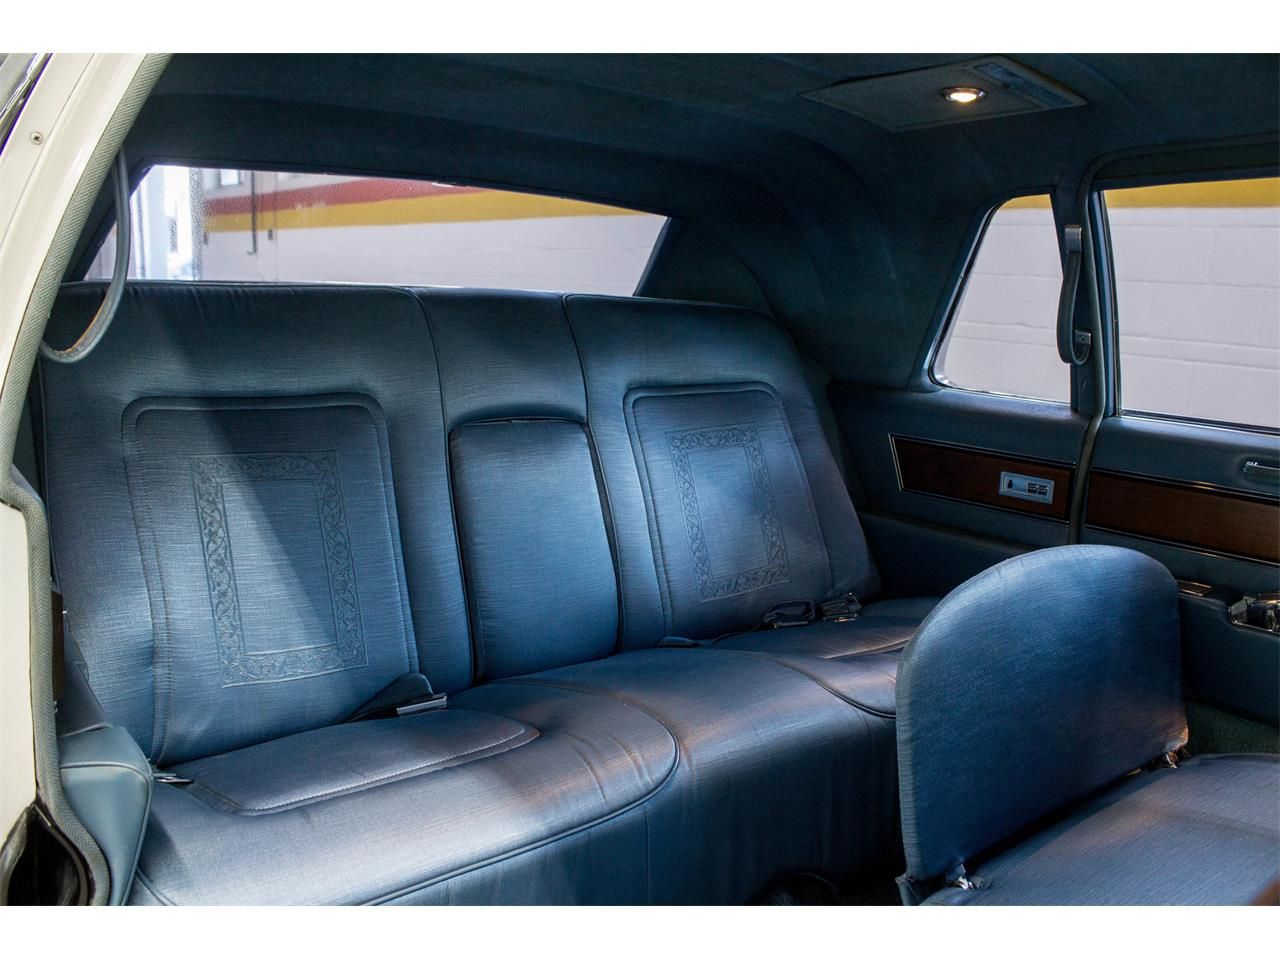 Large Picture of '66 Cadillac Fleetwood Limousine located in Montreal Quebec Offered by John Scotti Classic Cars - NKXQ